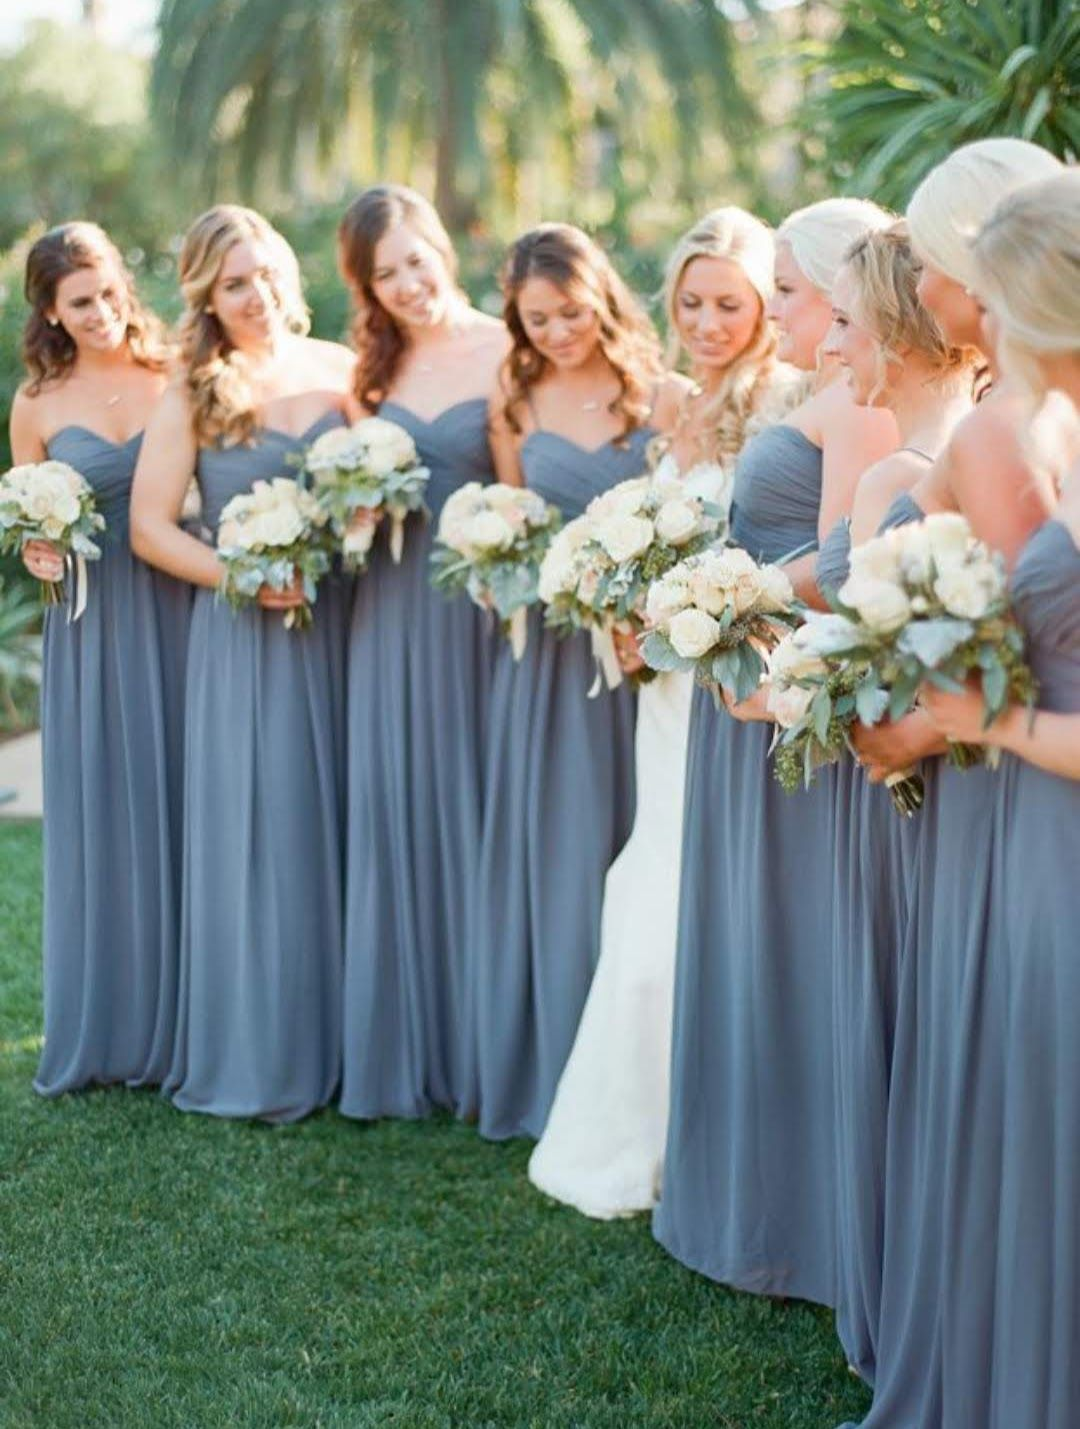 Blue bridesmaidsu dresses with grey groomsmen attire bouquet with